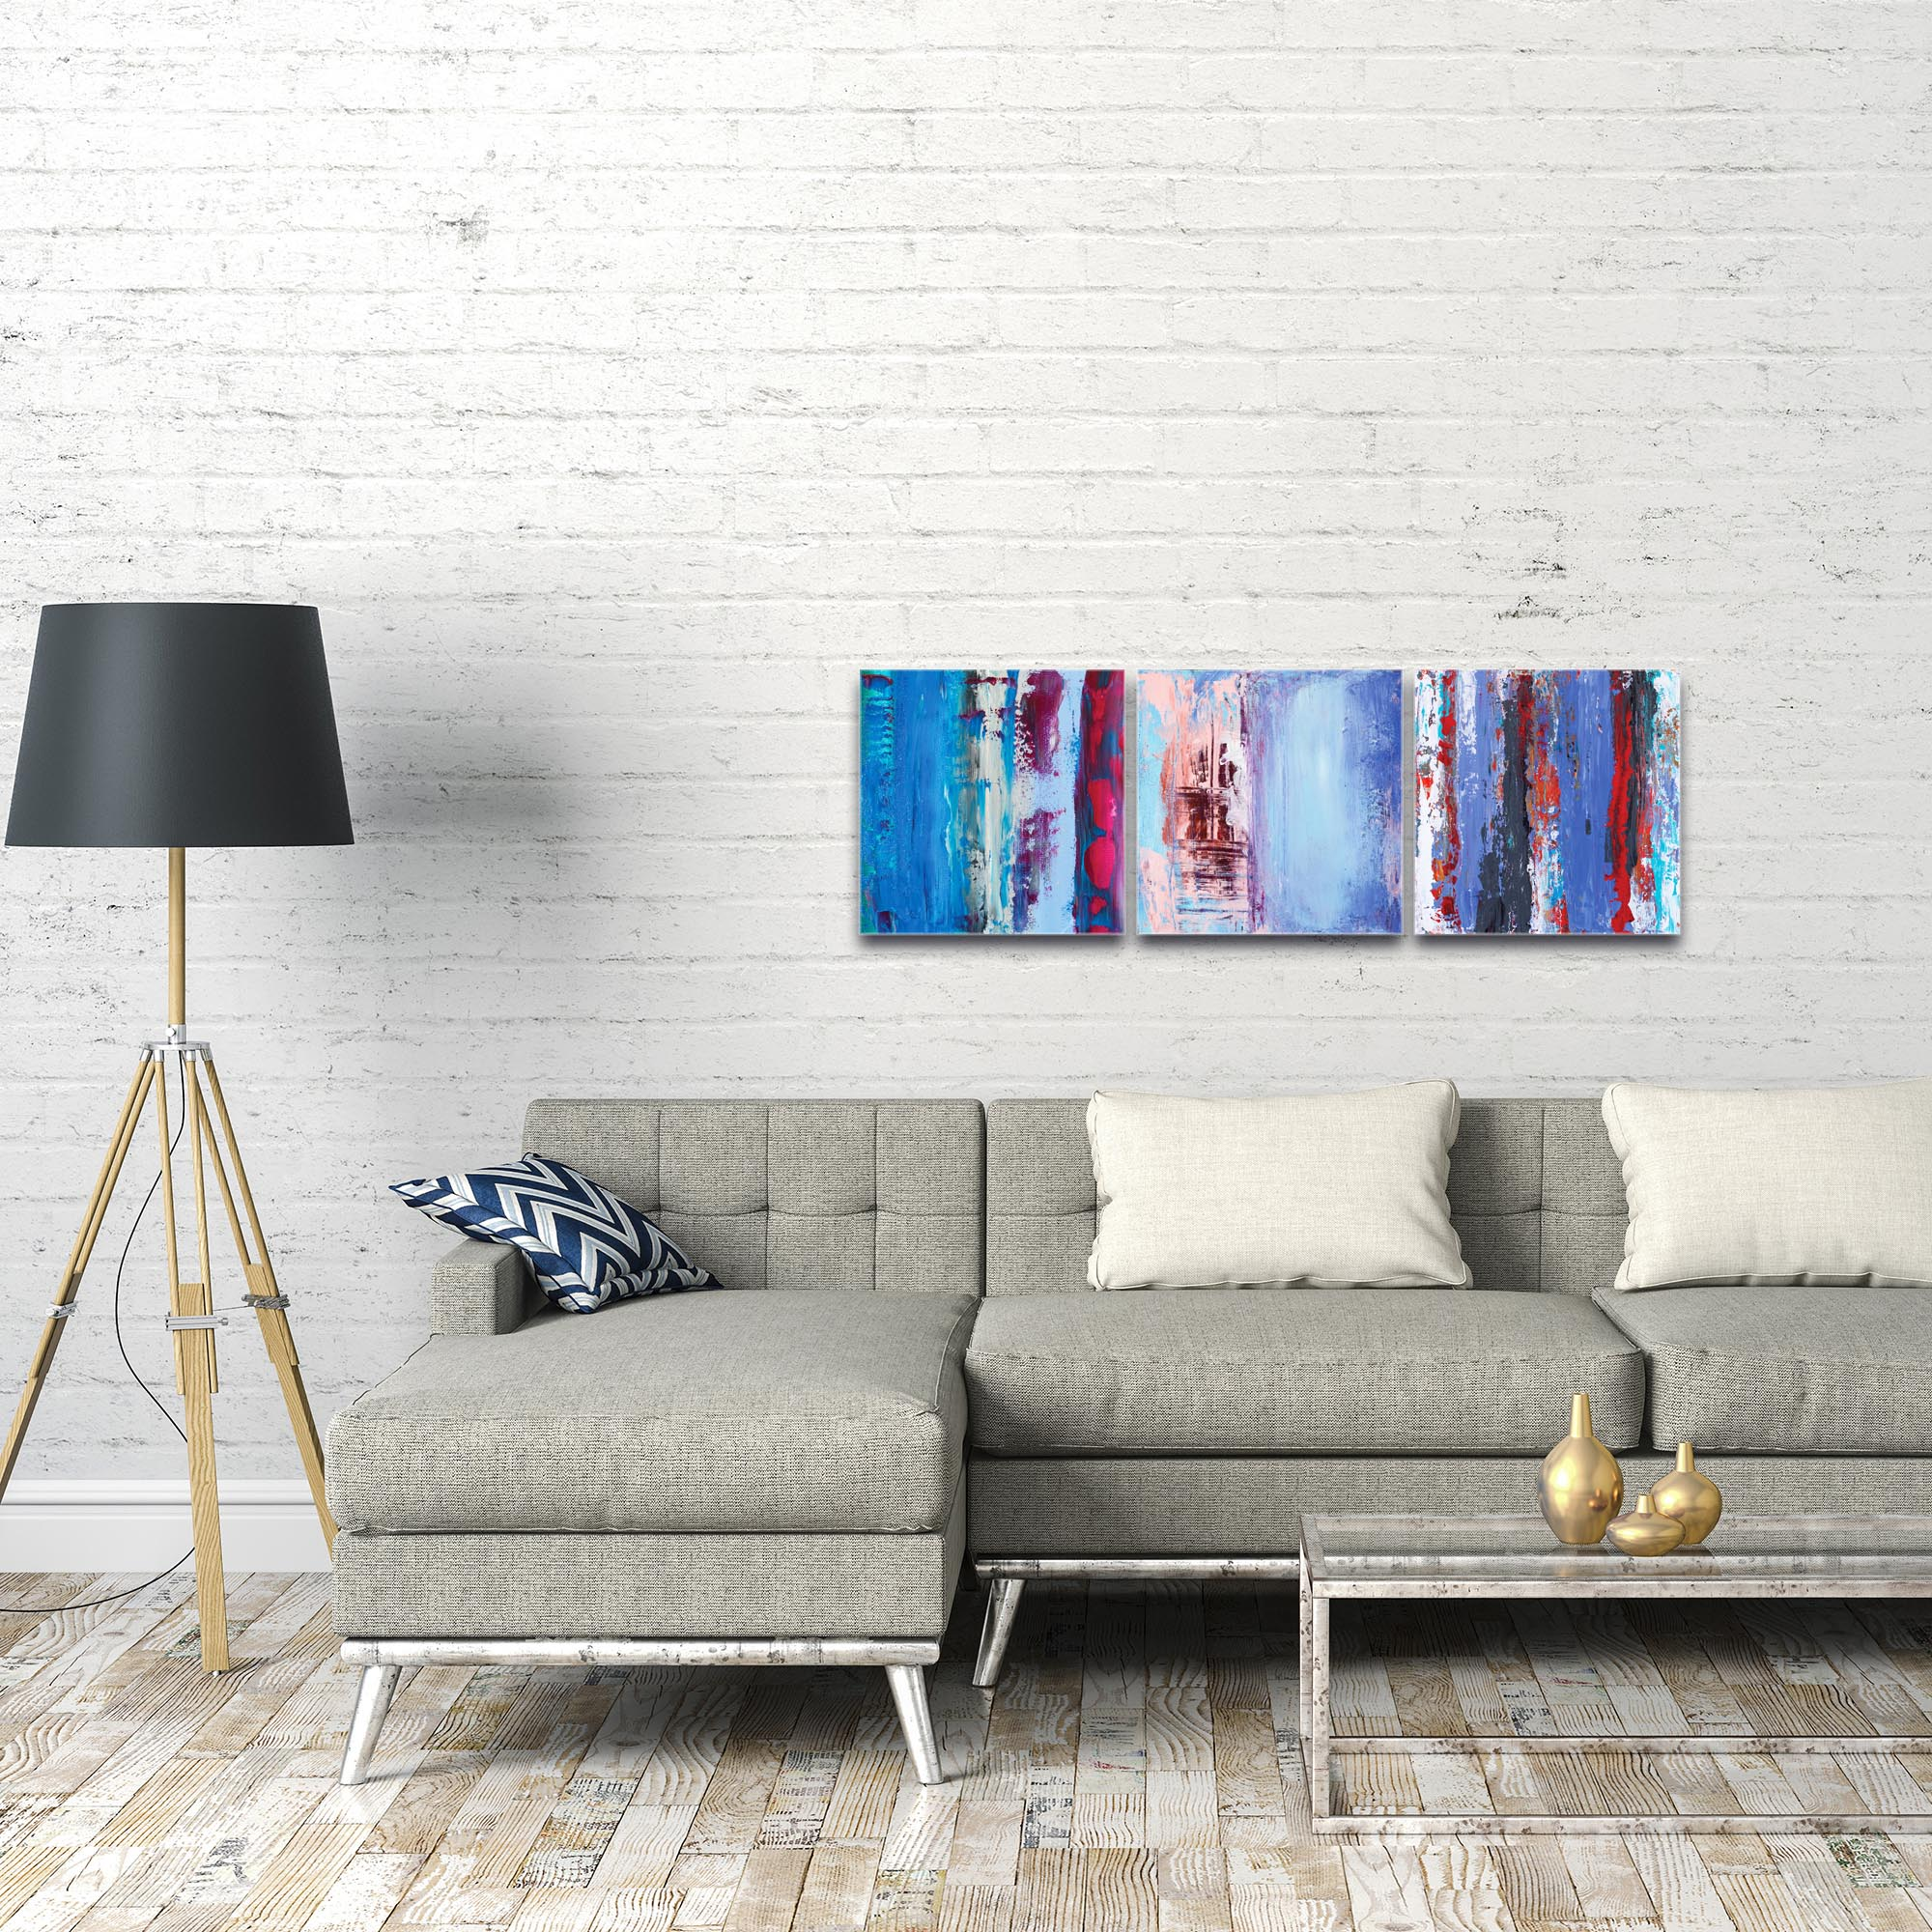 Abstract Wall Art 'Urban Triptych 1' - Urban Decor on Metal or Plexiglass - Image 3